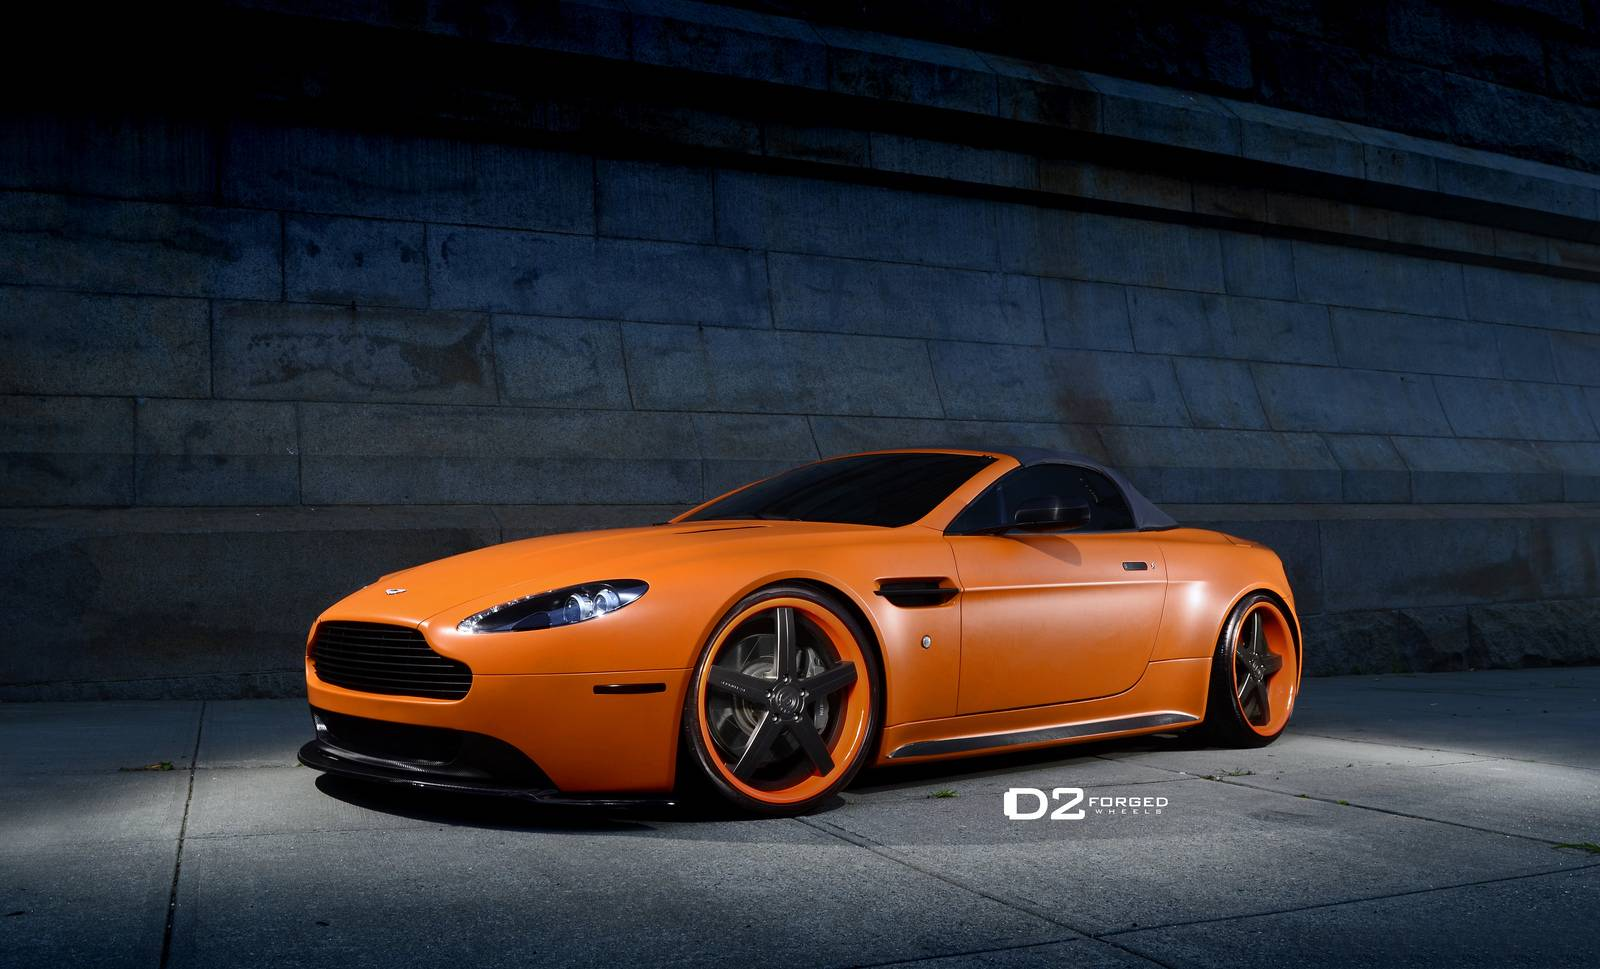 Gallery Orange Aston Martin V8 Vantage Roadster On D2forged Wheels Gtspirit